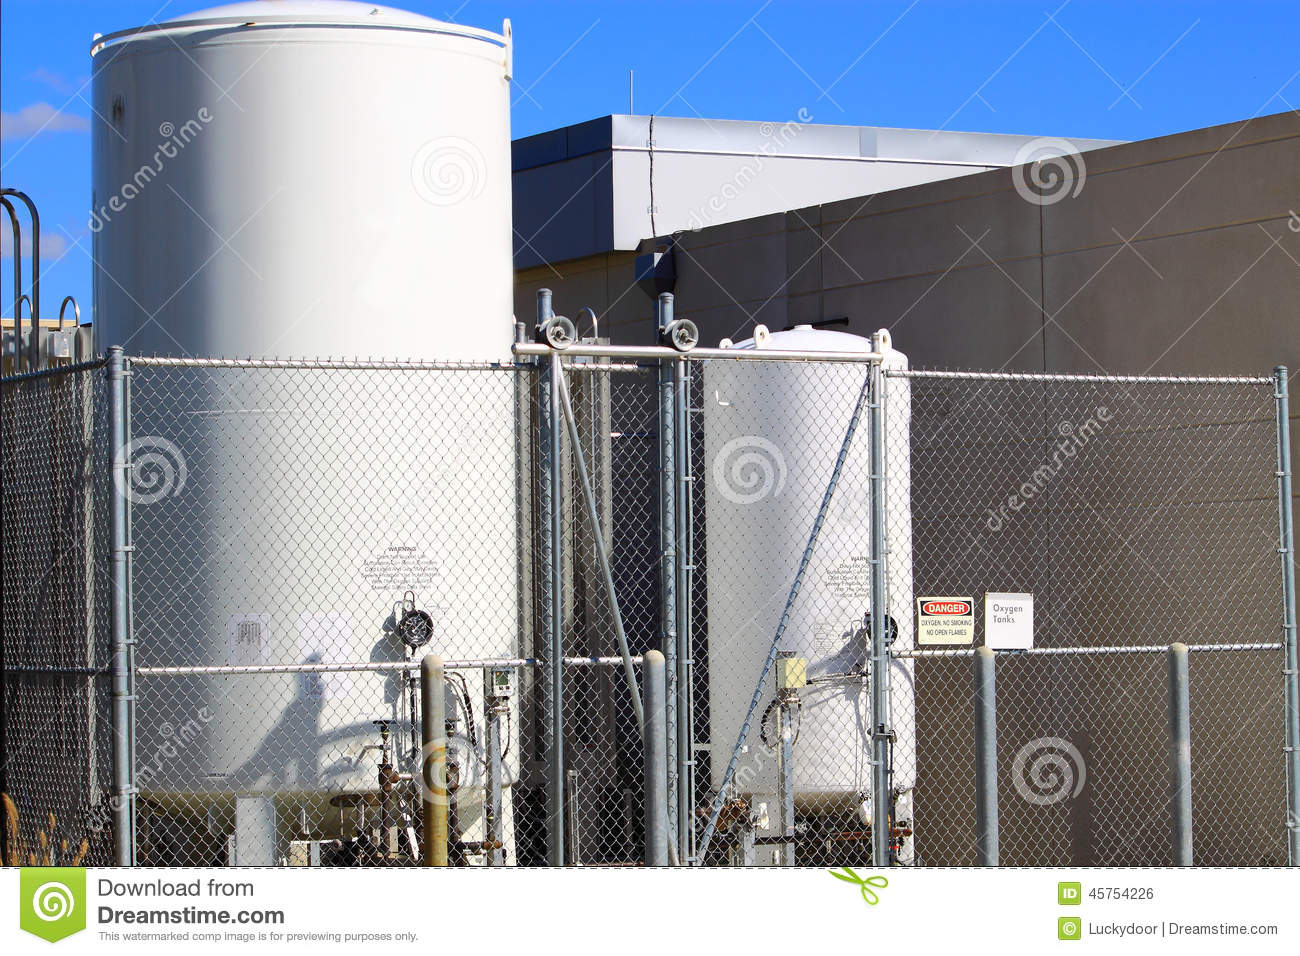 Stock Photo Bulk Oxygen Tanks Medical Installed Hospitals Image45754226 on medical oxygen tanks